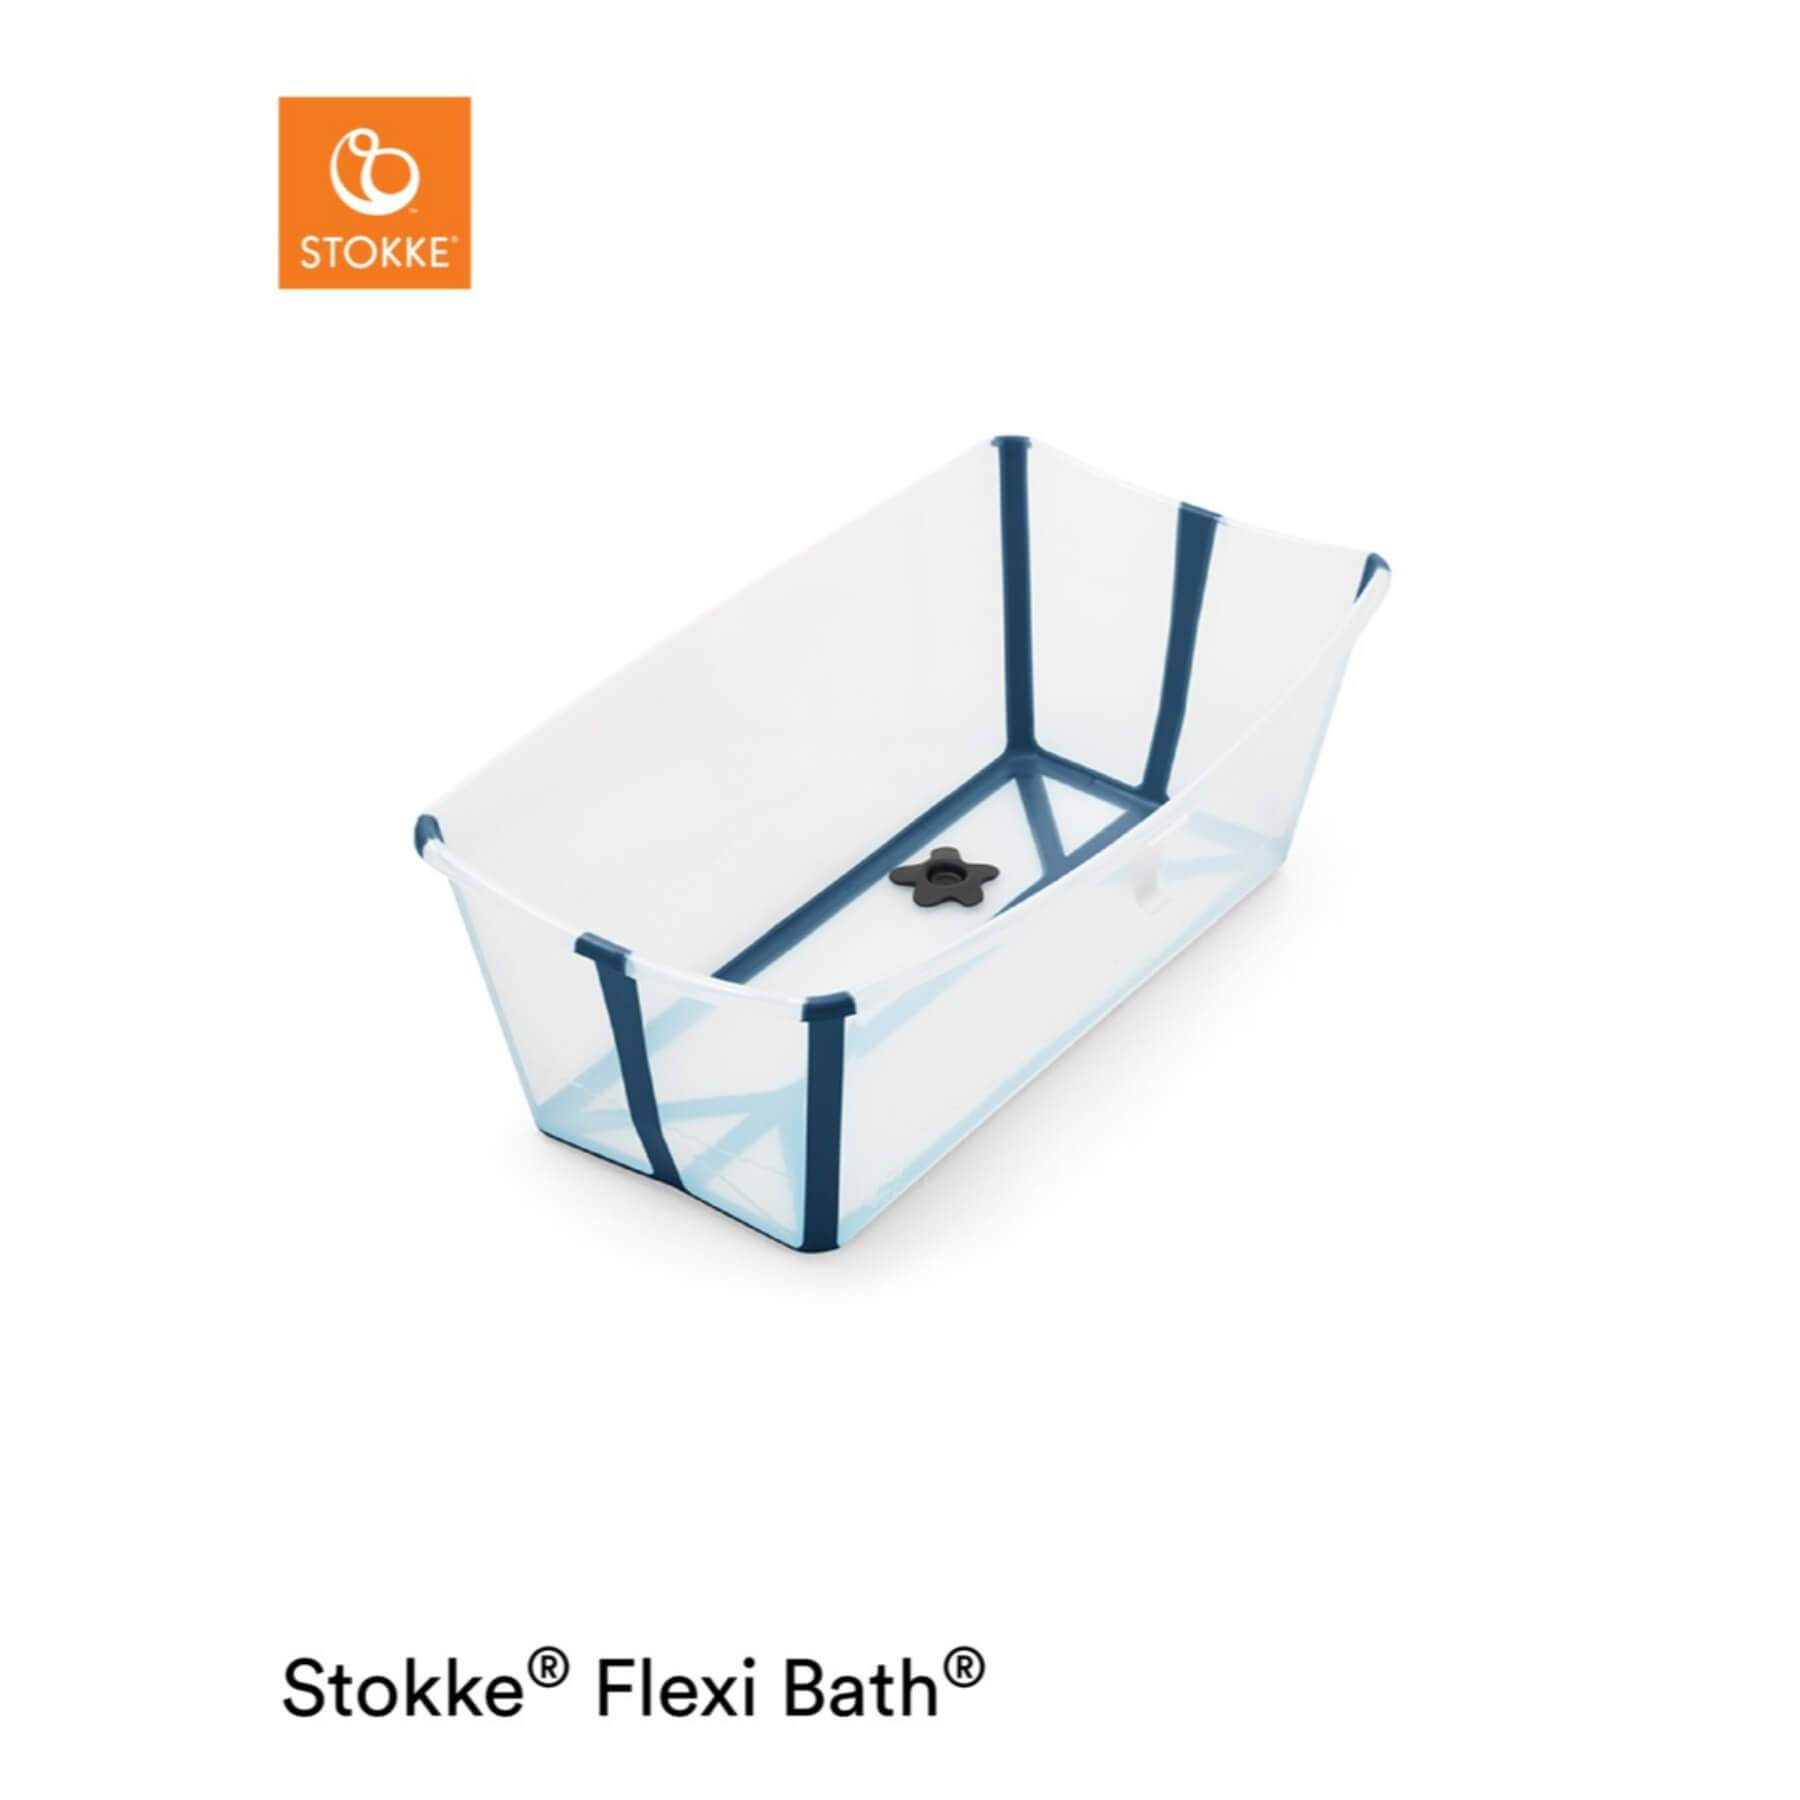 Stokke Flexibath - Transparent Blue